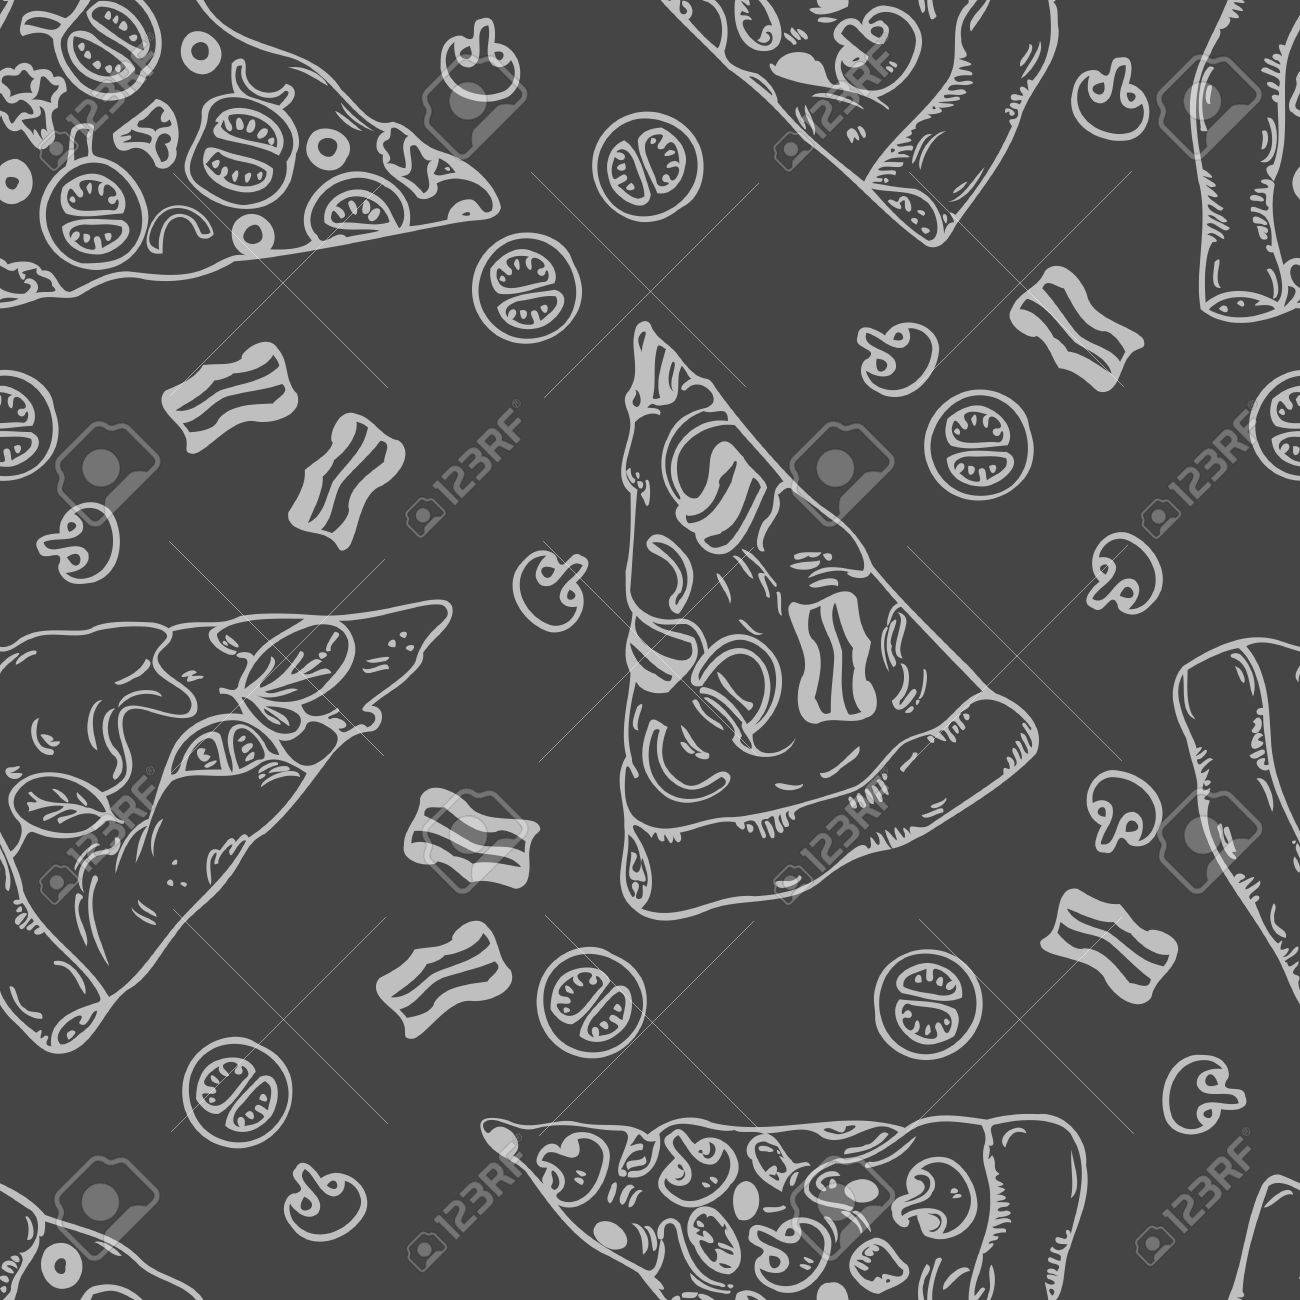 Hand Drawn Slices Of Pizza Seamless Pattern Chalkboard Menu Background Vector Illustration Stock